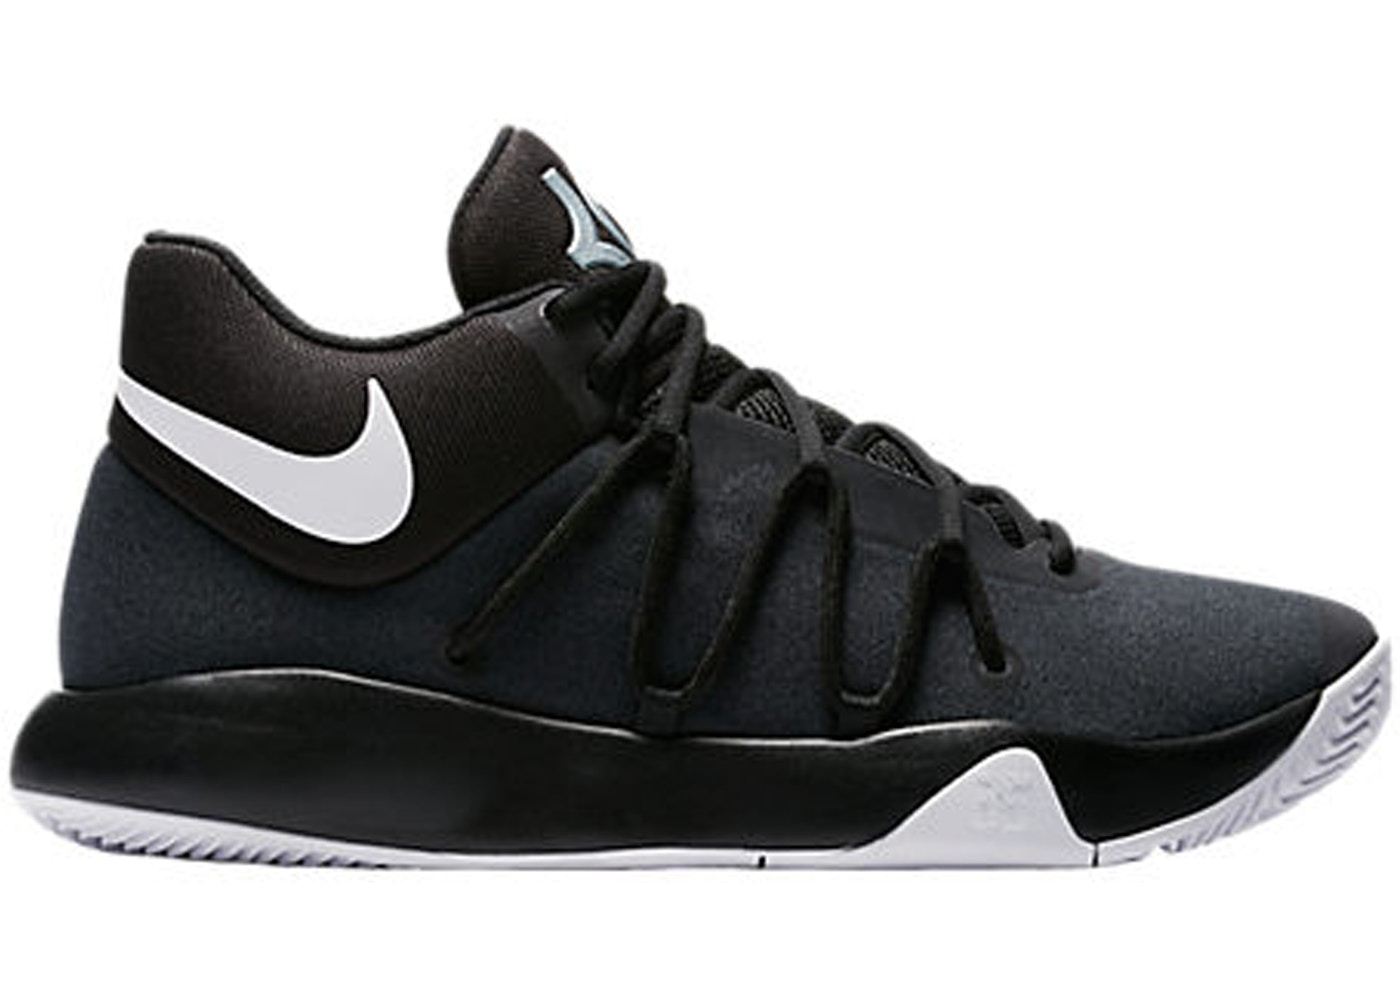 a37980292989 KD Trey 5 V Anthracite Black - 897638-001